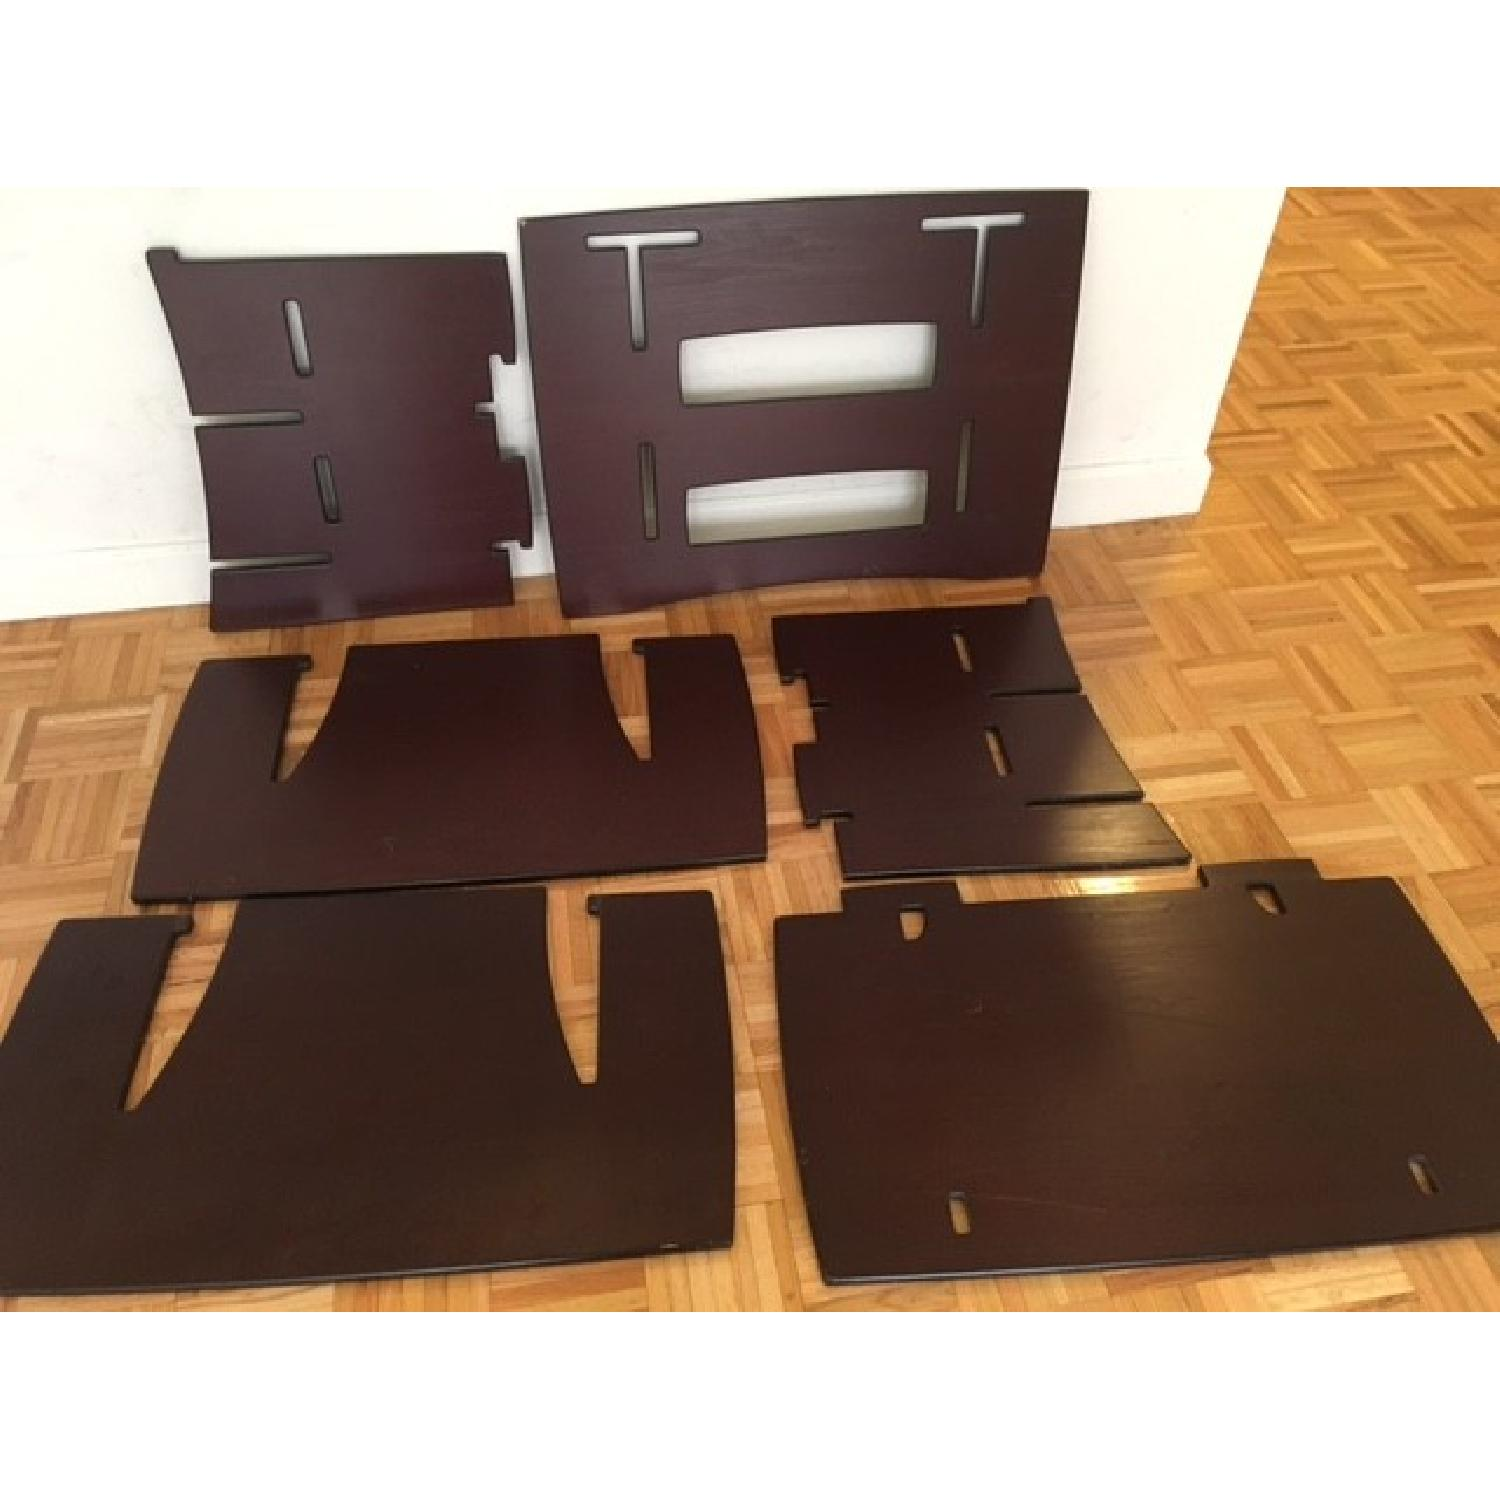 Pier 1 Collapsible TV Stand - image-5